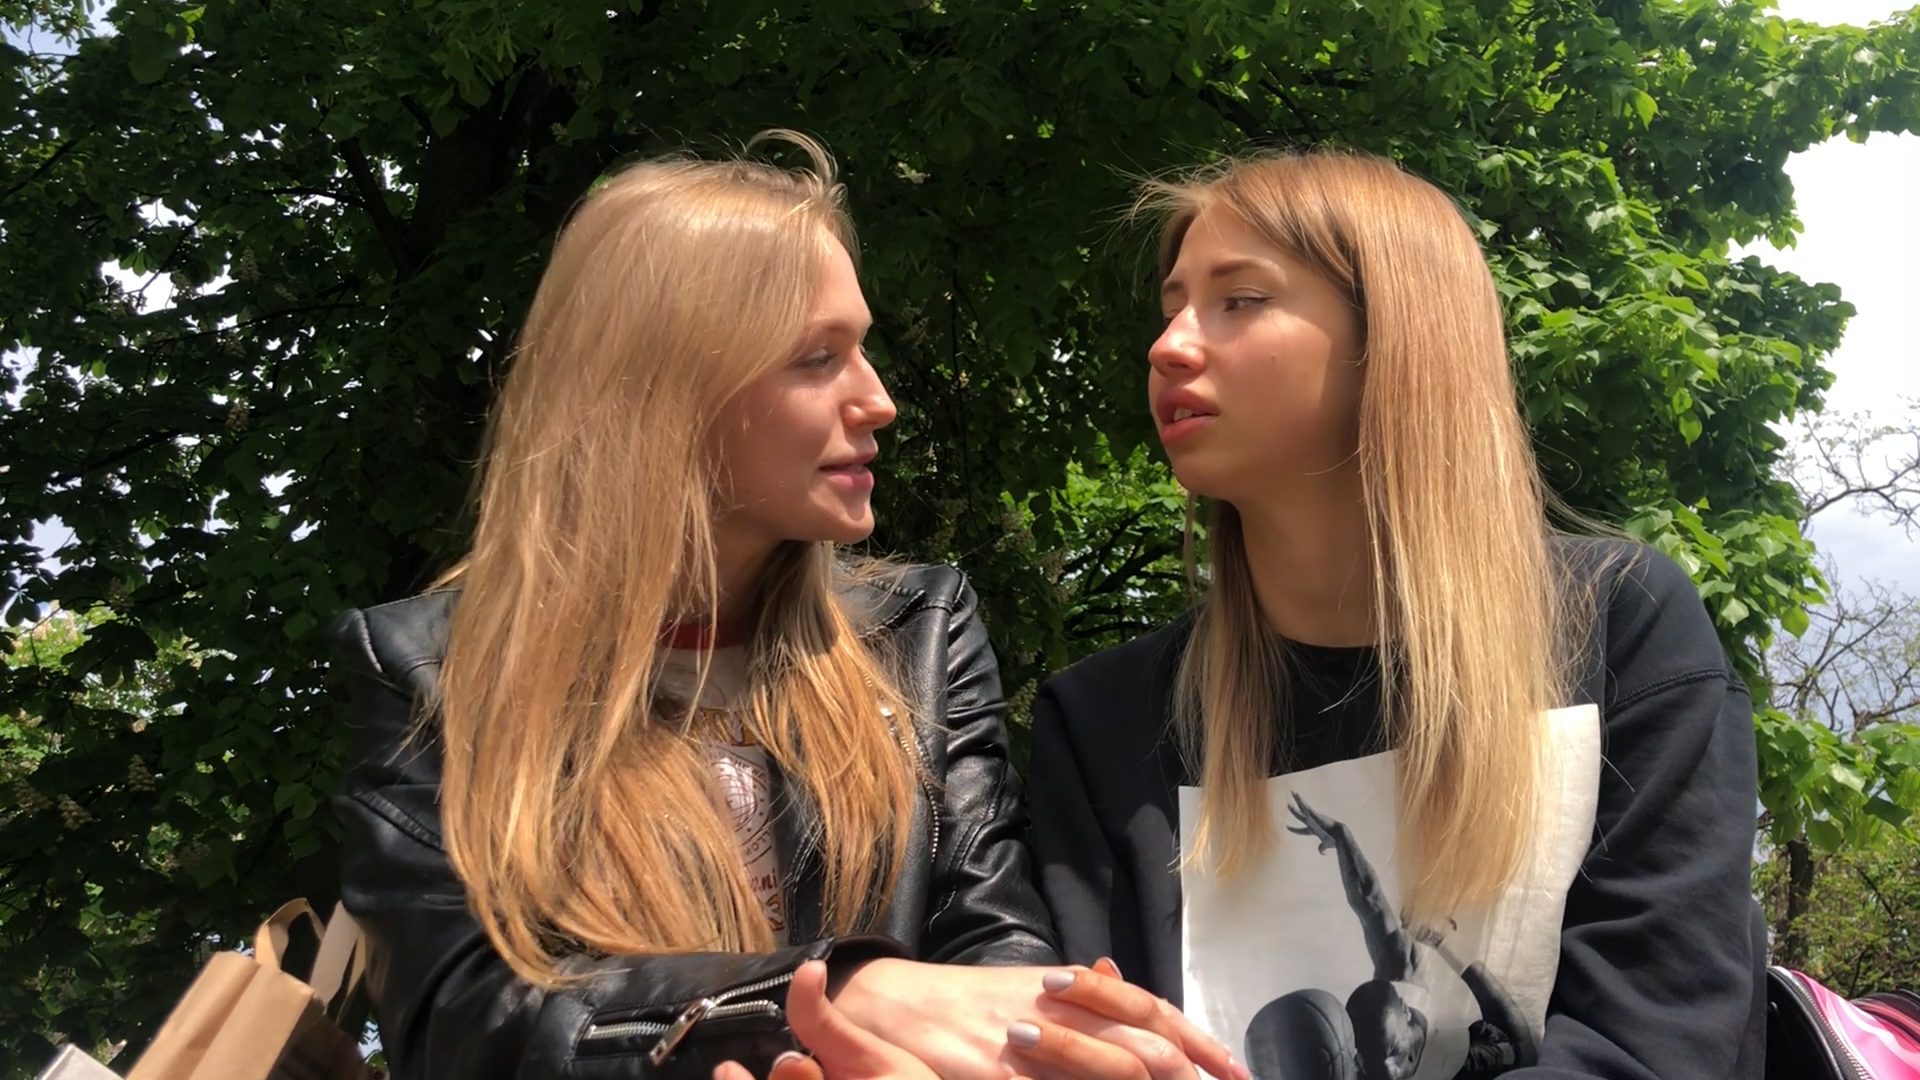 Ersties.com Intimate Moments With Ellie & Aislin (19)